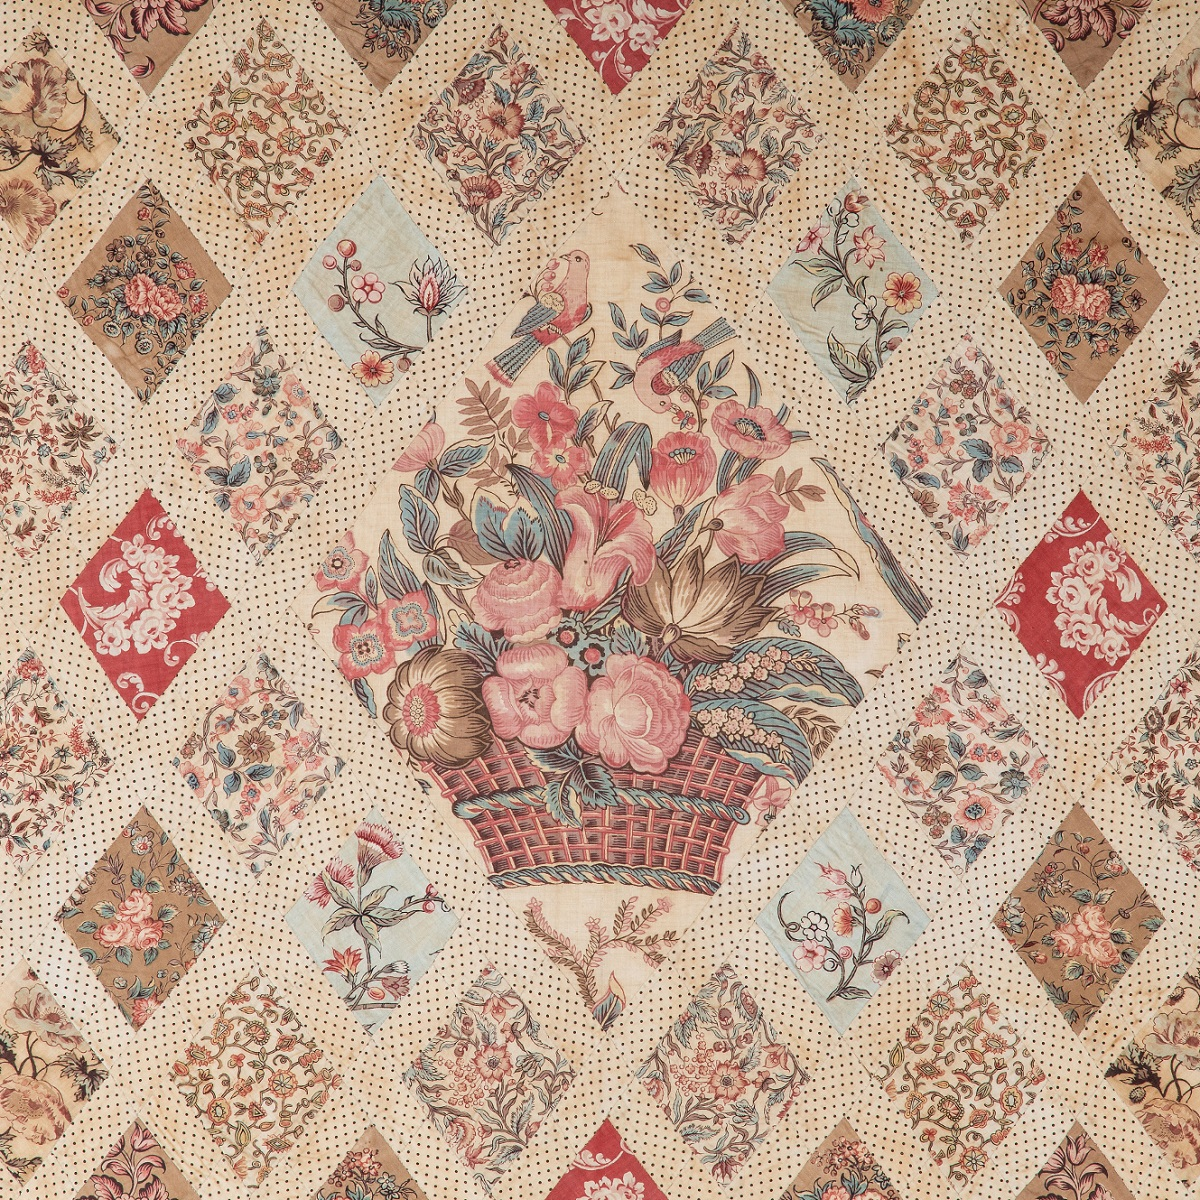 Centre of the Austen family patchwork coverlet